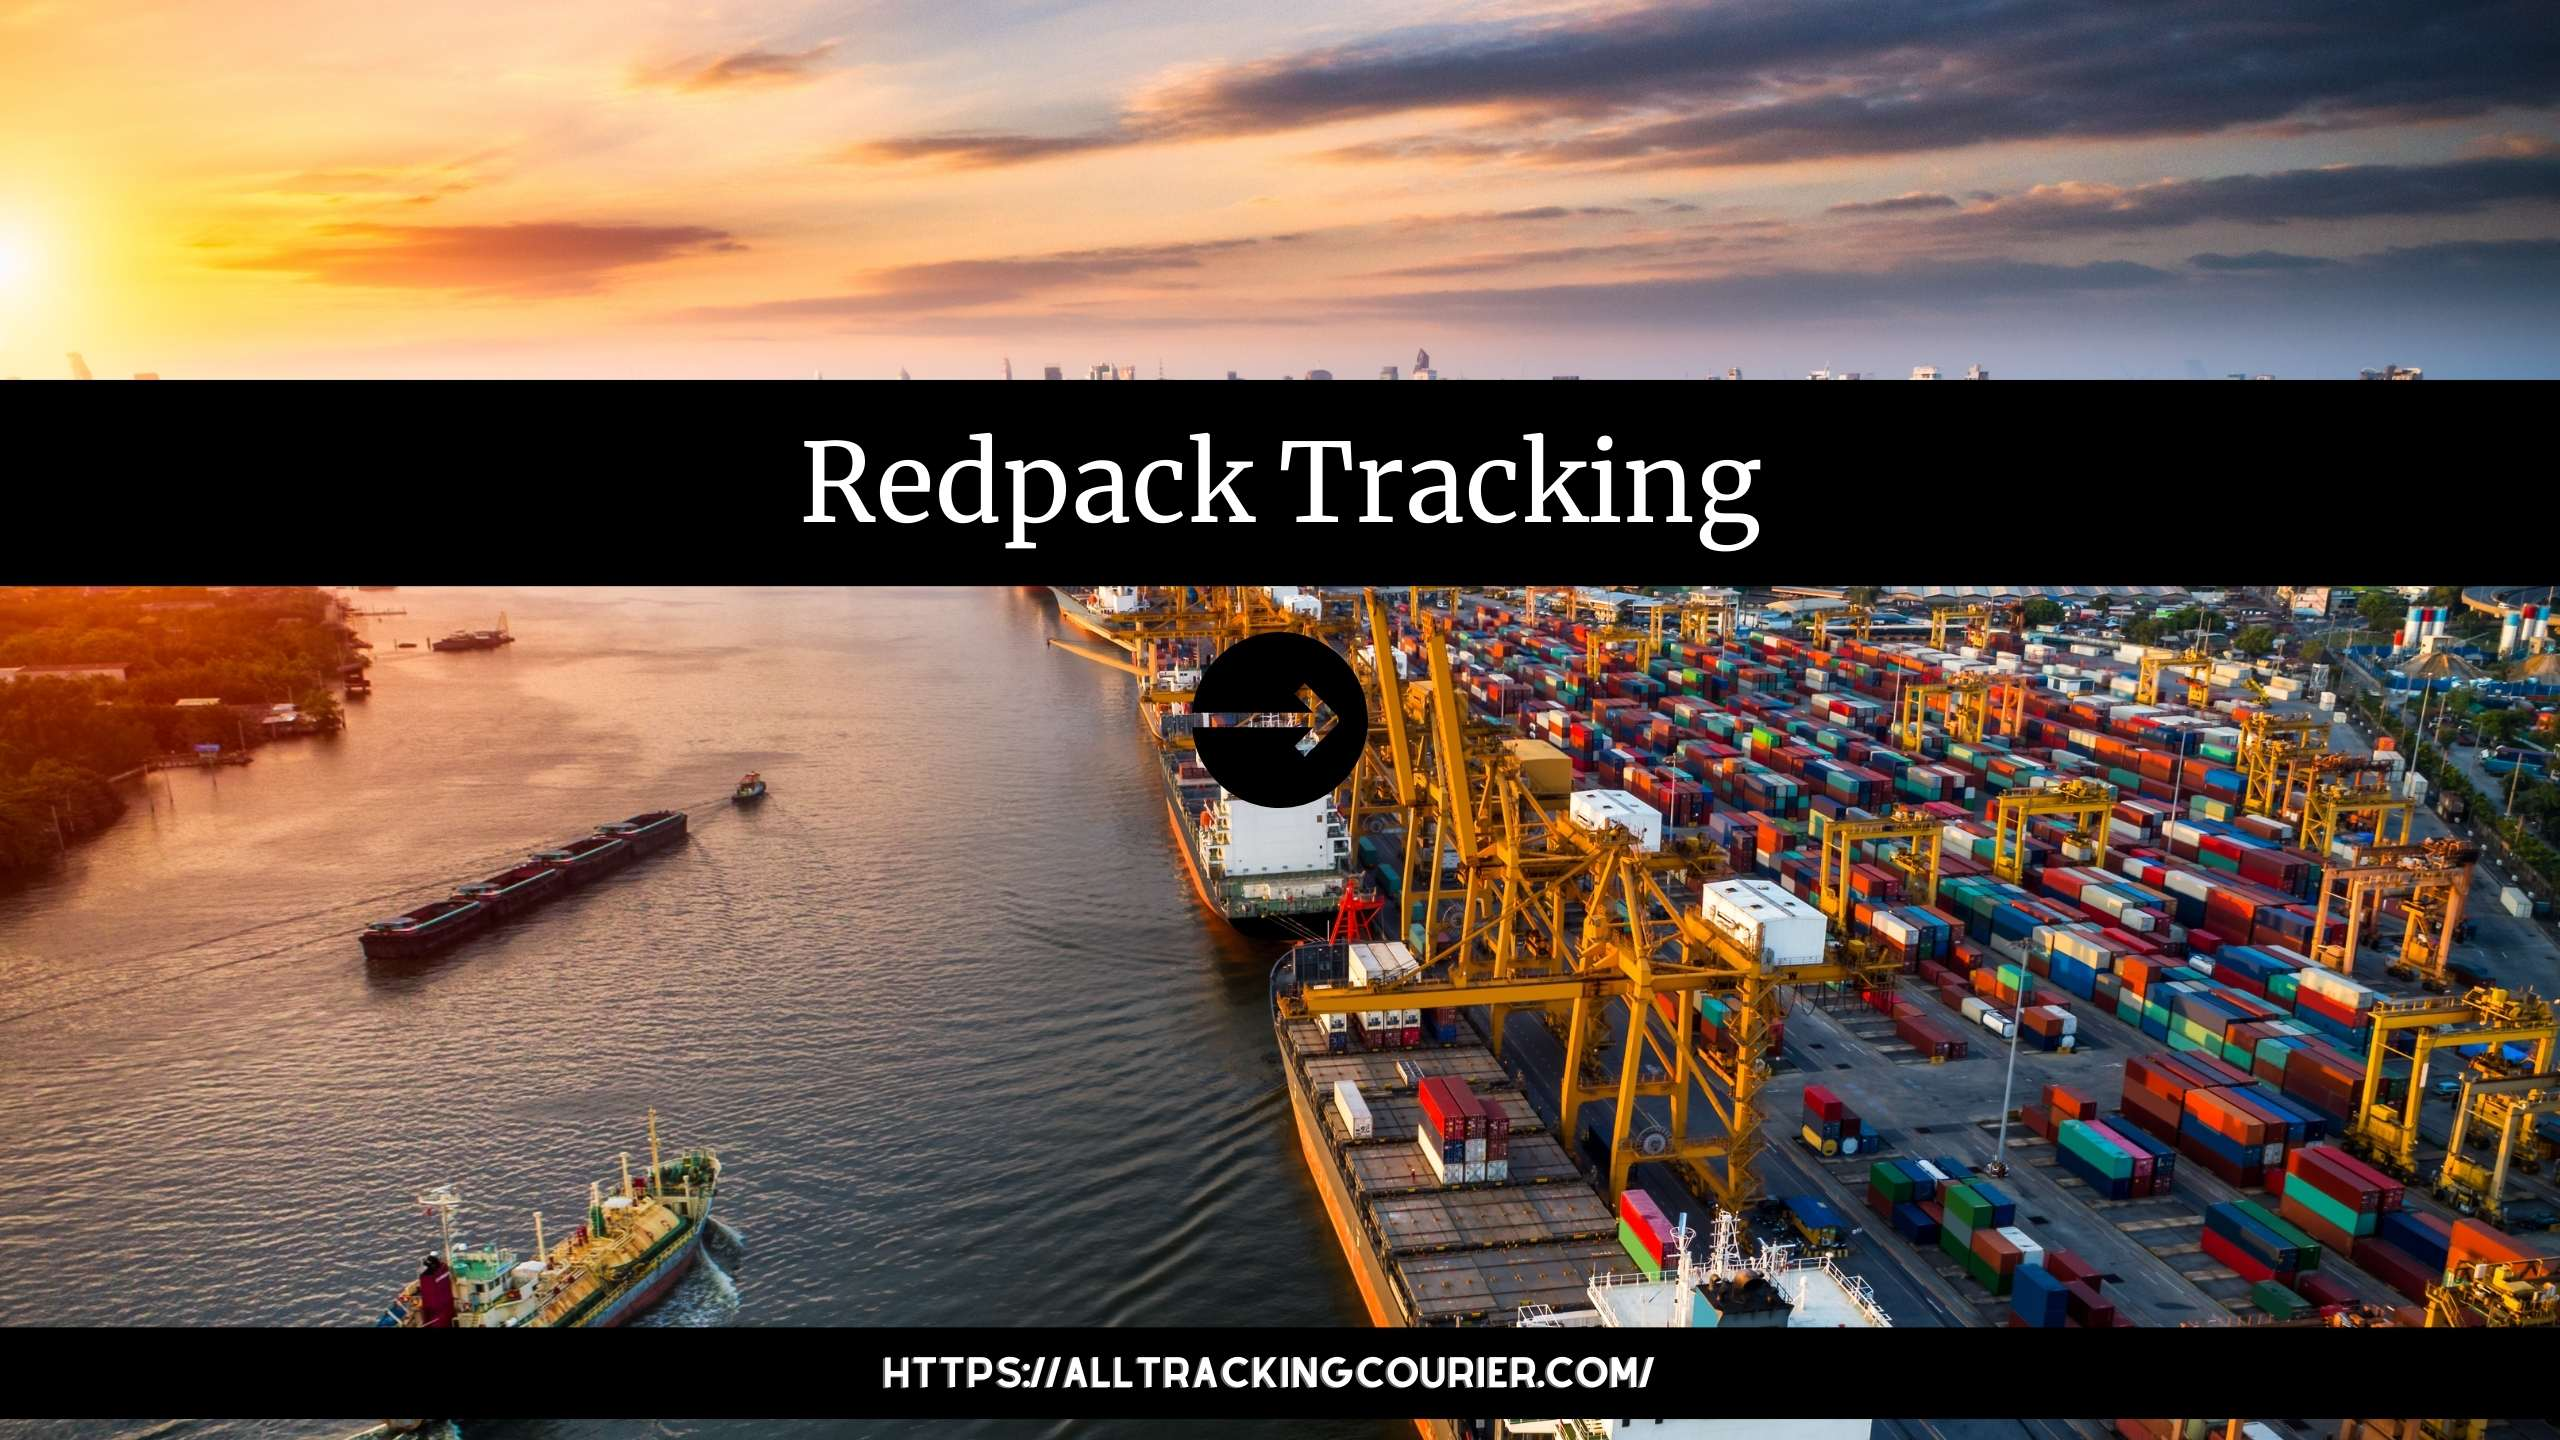 Redpack Tracking